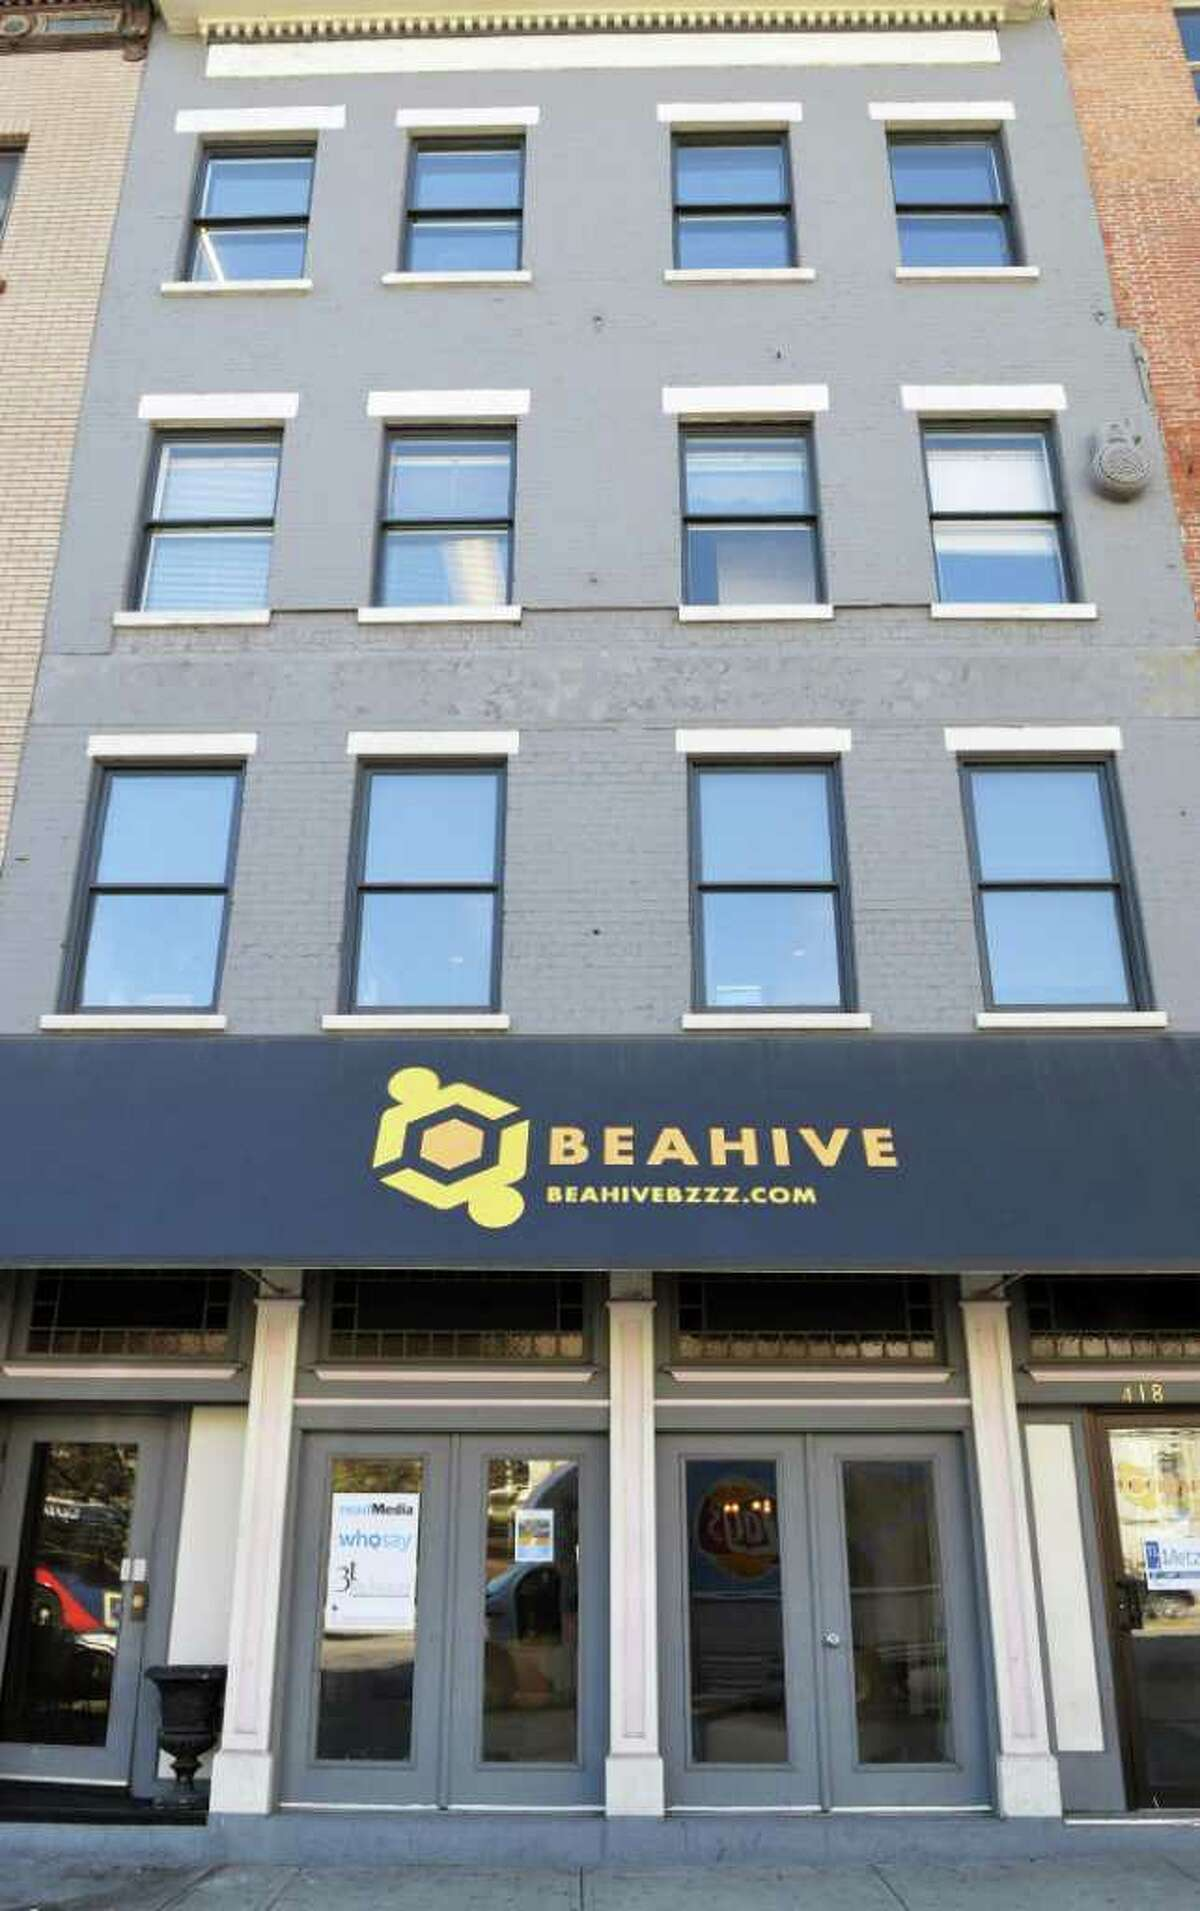 Exterior of Beahive, Albany's first coworking space Tuesday March 20, 2012. (John Carl D'Annibale / Times Union)